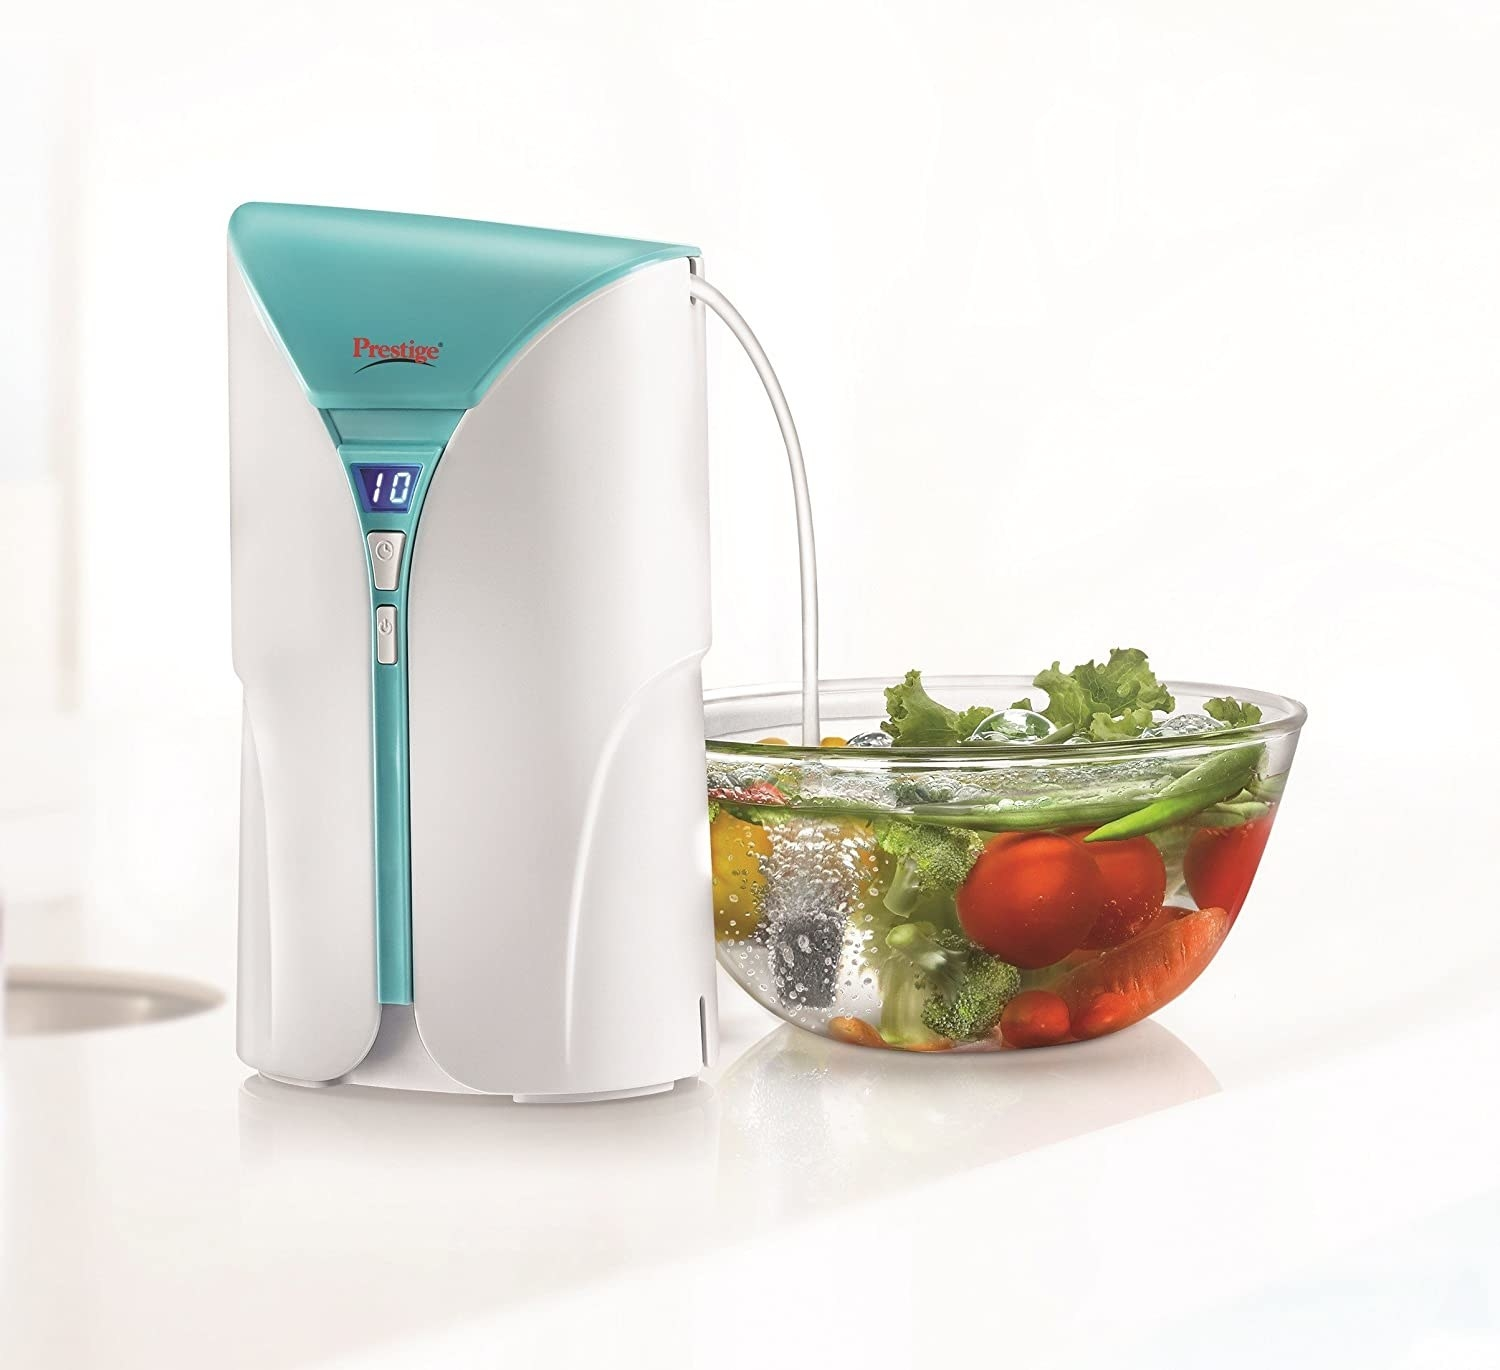 A food ozonizer pouring liquid into a bowl of vegetables